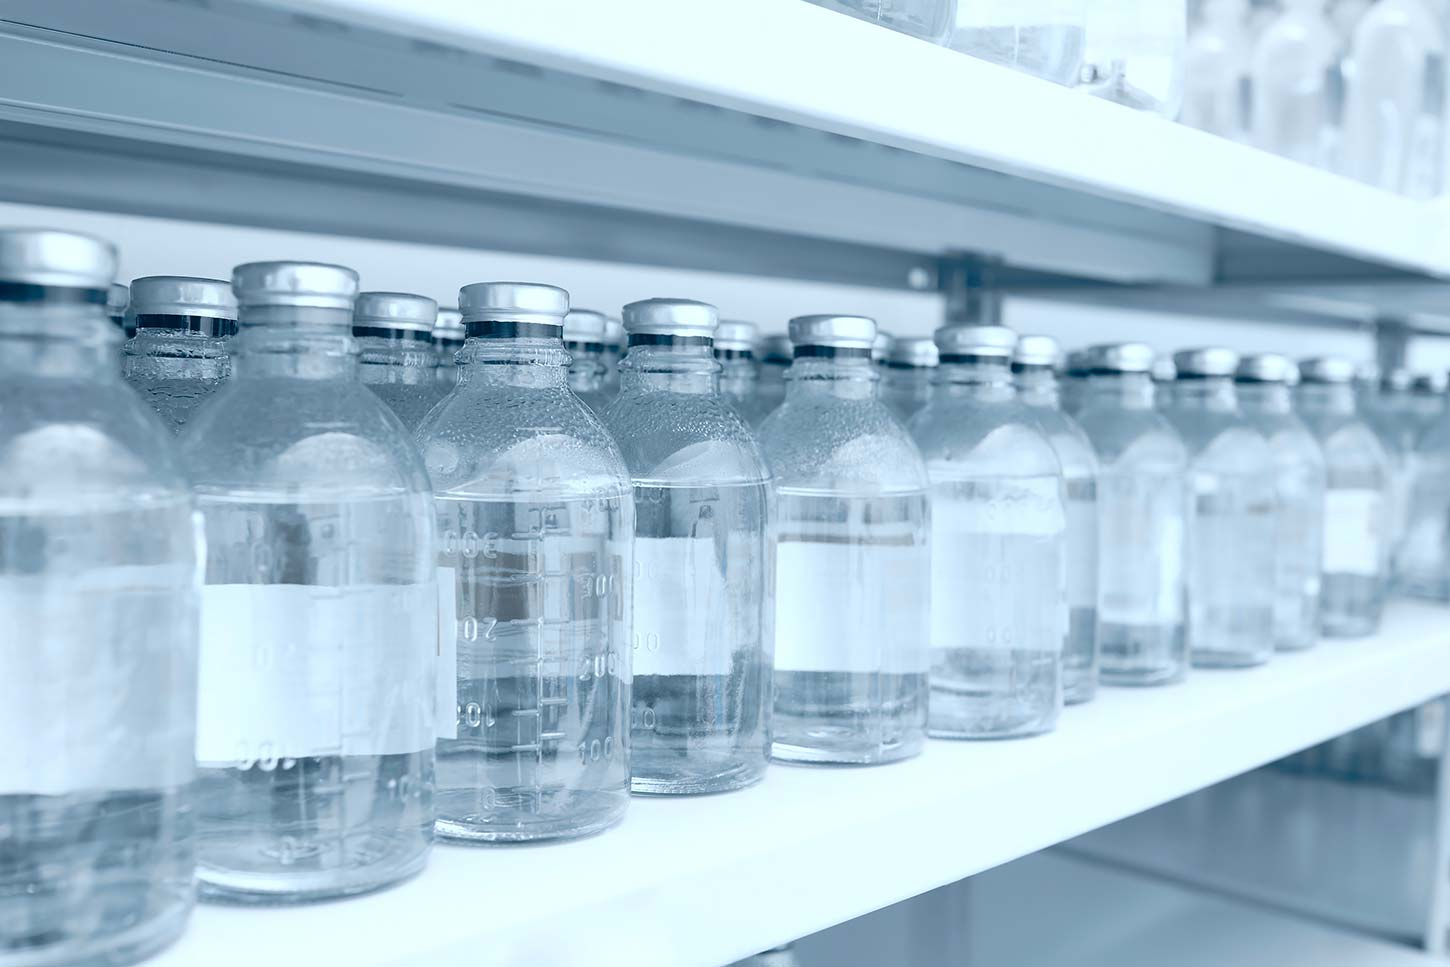 Containers with a clear liquid on white metal shelves